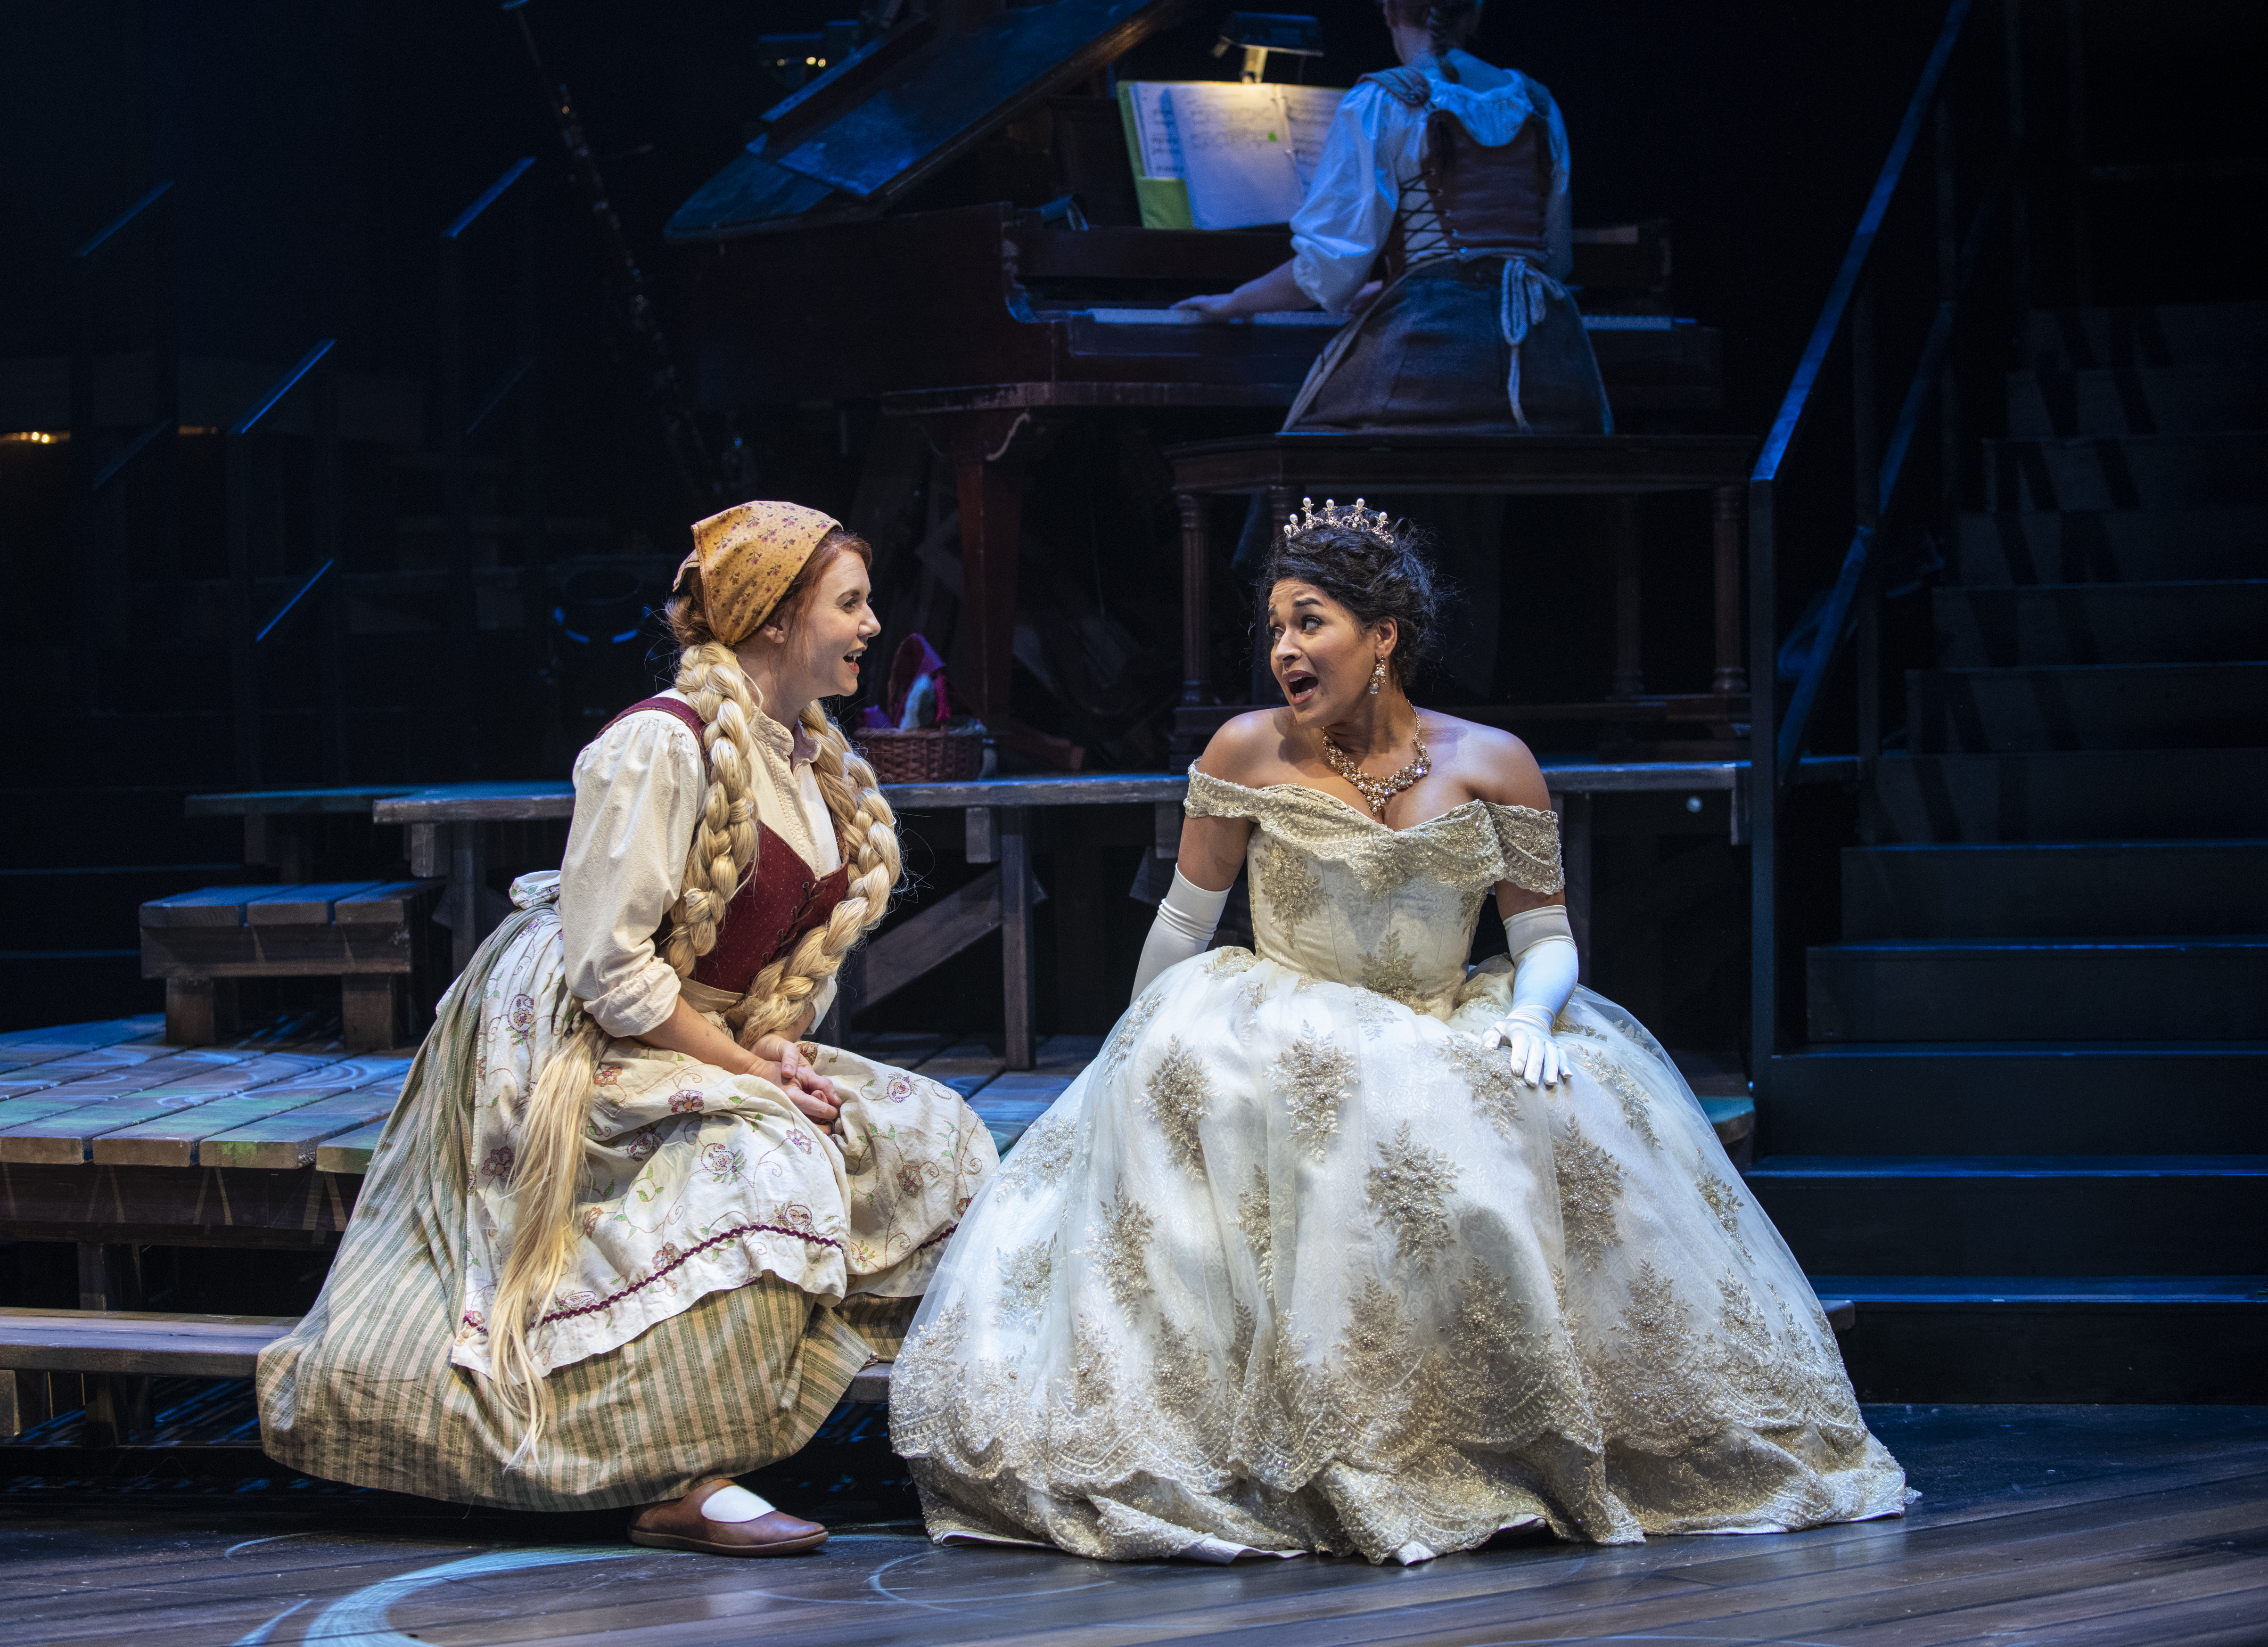 """Brianna Borger (left) stars as the Baker's Wife and Ximone Rose stars as Cinderella in the Writers Theatre production of """"Into the Woods."""""""